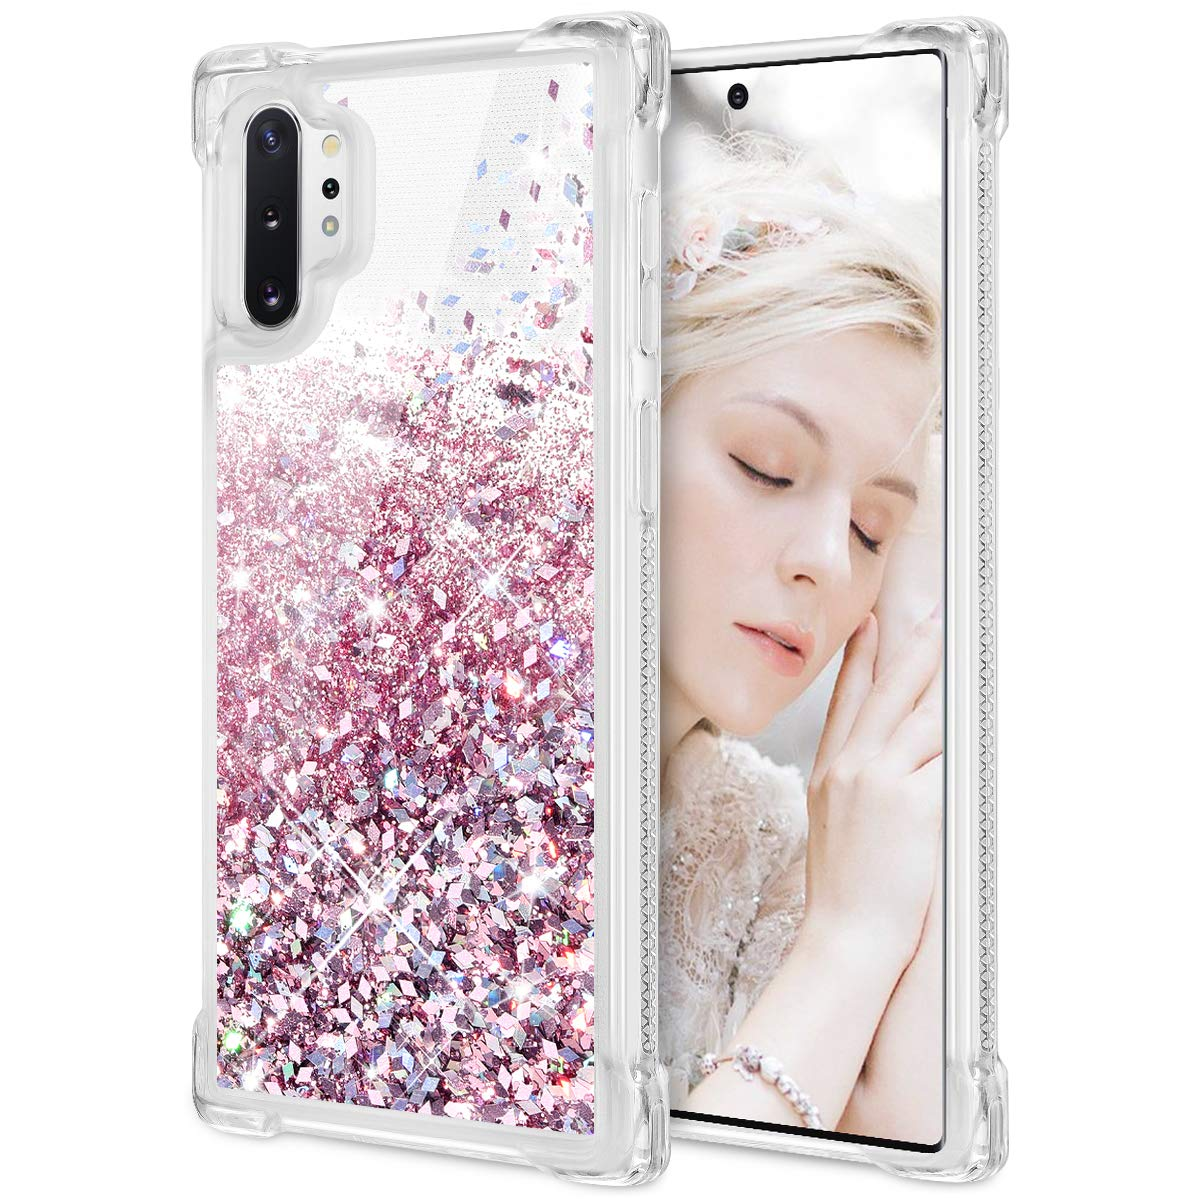 Maxdara Case for Galaxy Note 10 Plus Case Glitter Liquid Girls Women Case with Floating Quicksand Bling Shiny Sparkle Luxury Fashion Soft TPU Bumper Protective Case for Galaxy Note 10 Plus (Rosegold)